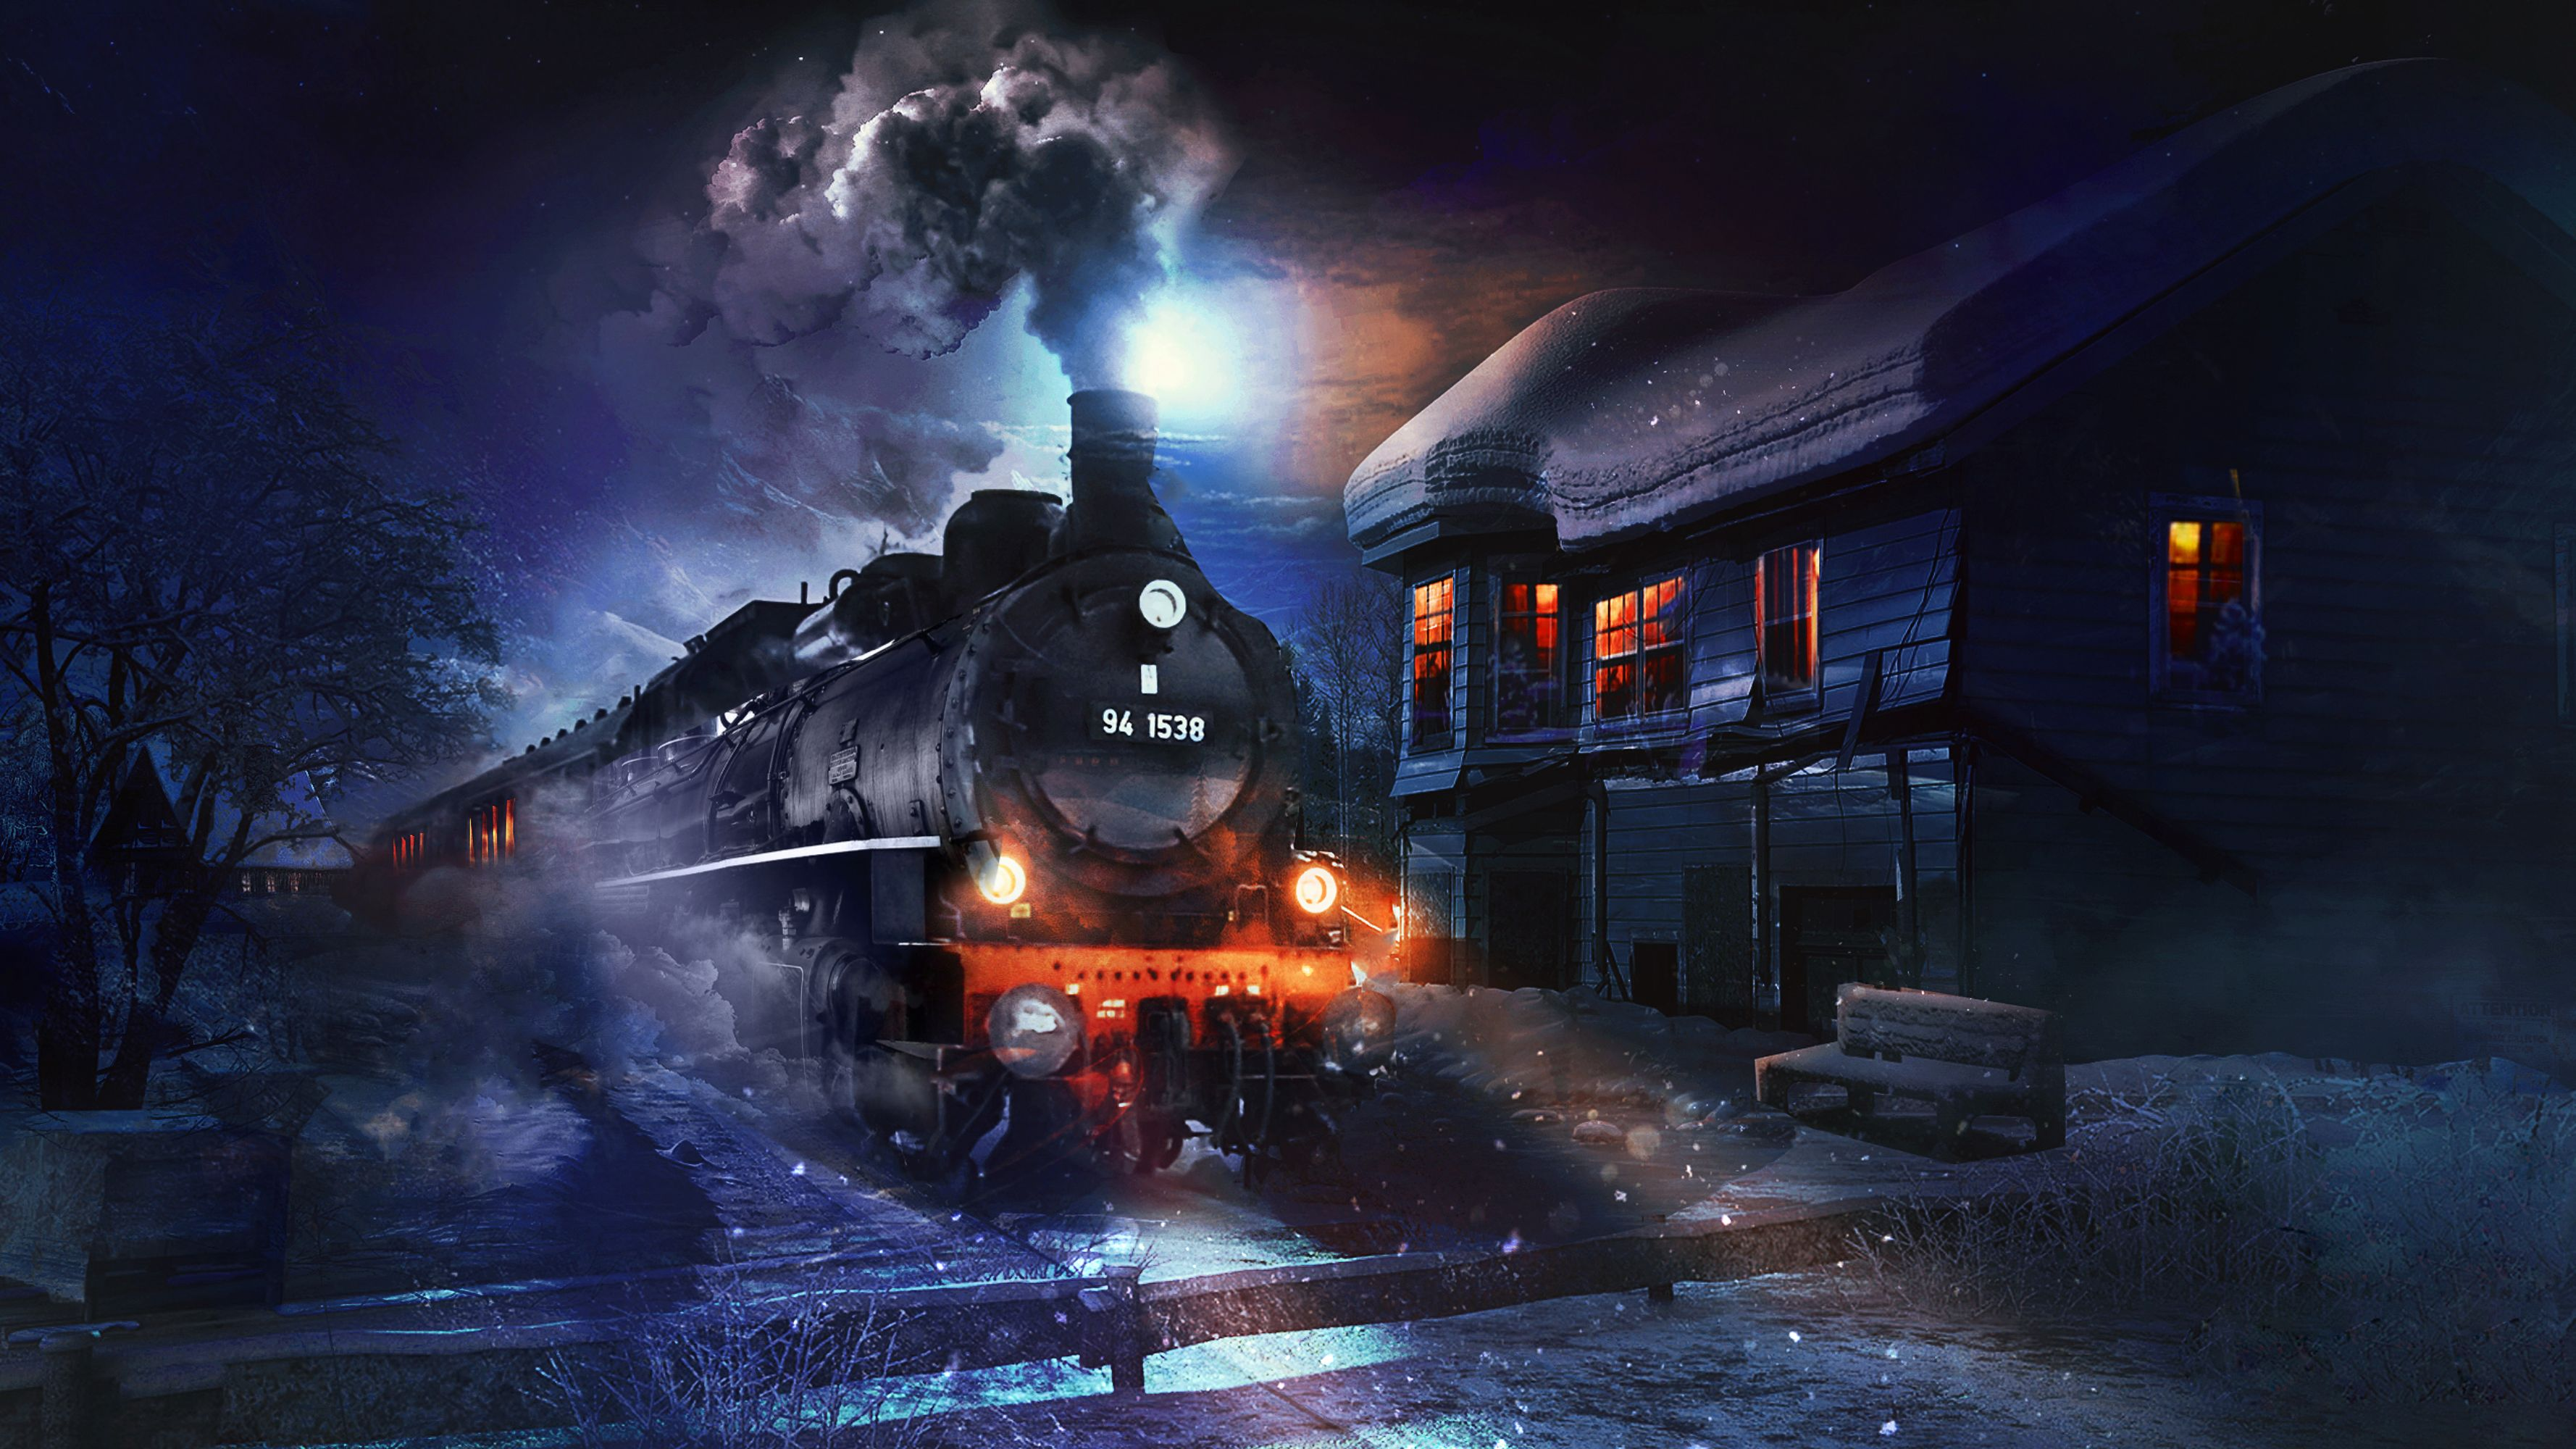 122621 download wallpaper Train, Art, Night, Smoke screensavers and pictures for free